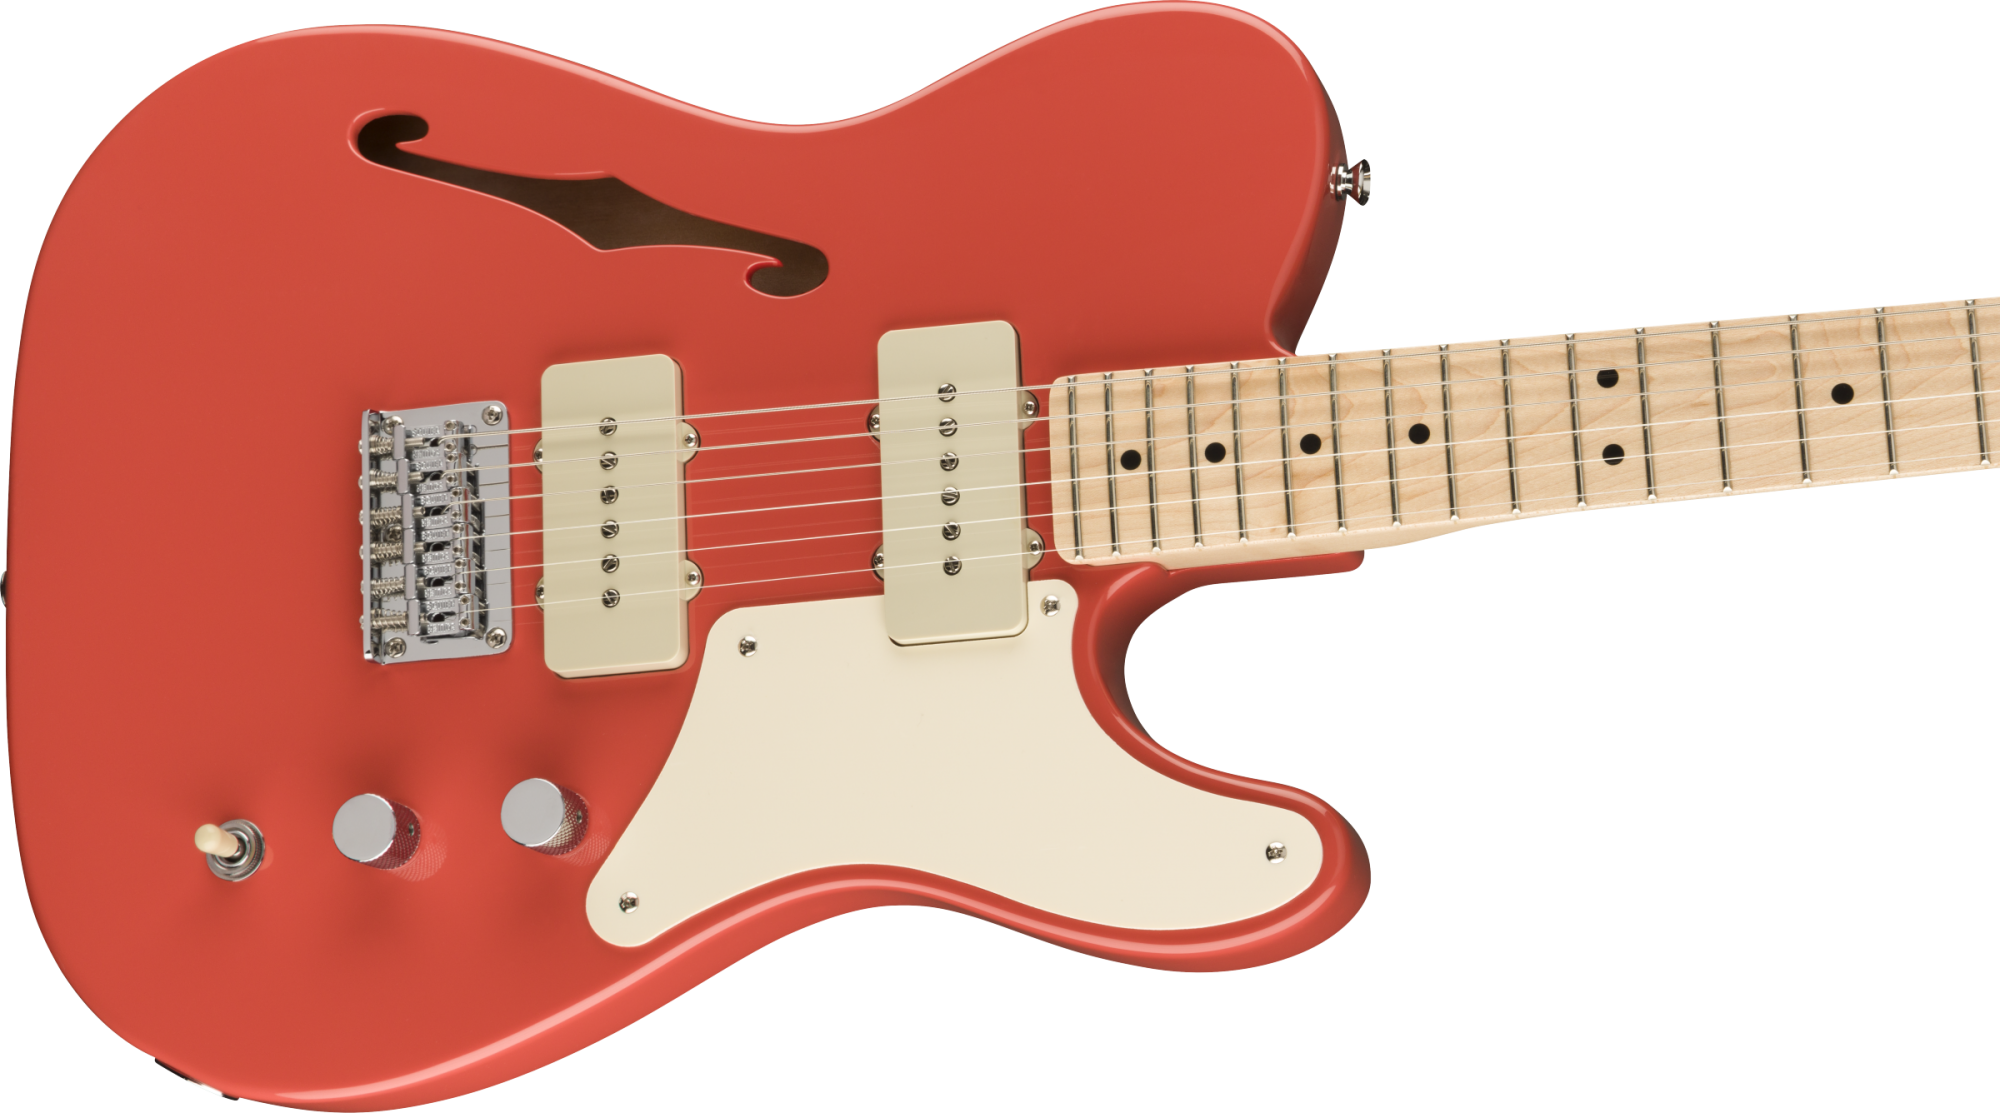 Squier Paranormal Cabronita Telecaster Thinline - Fiesta Red